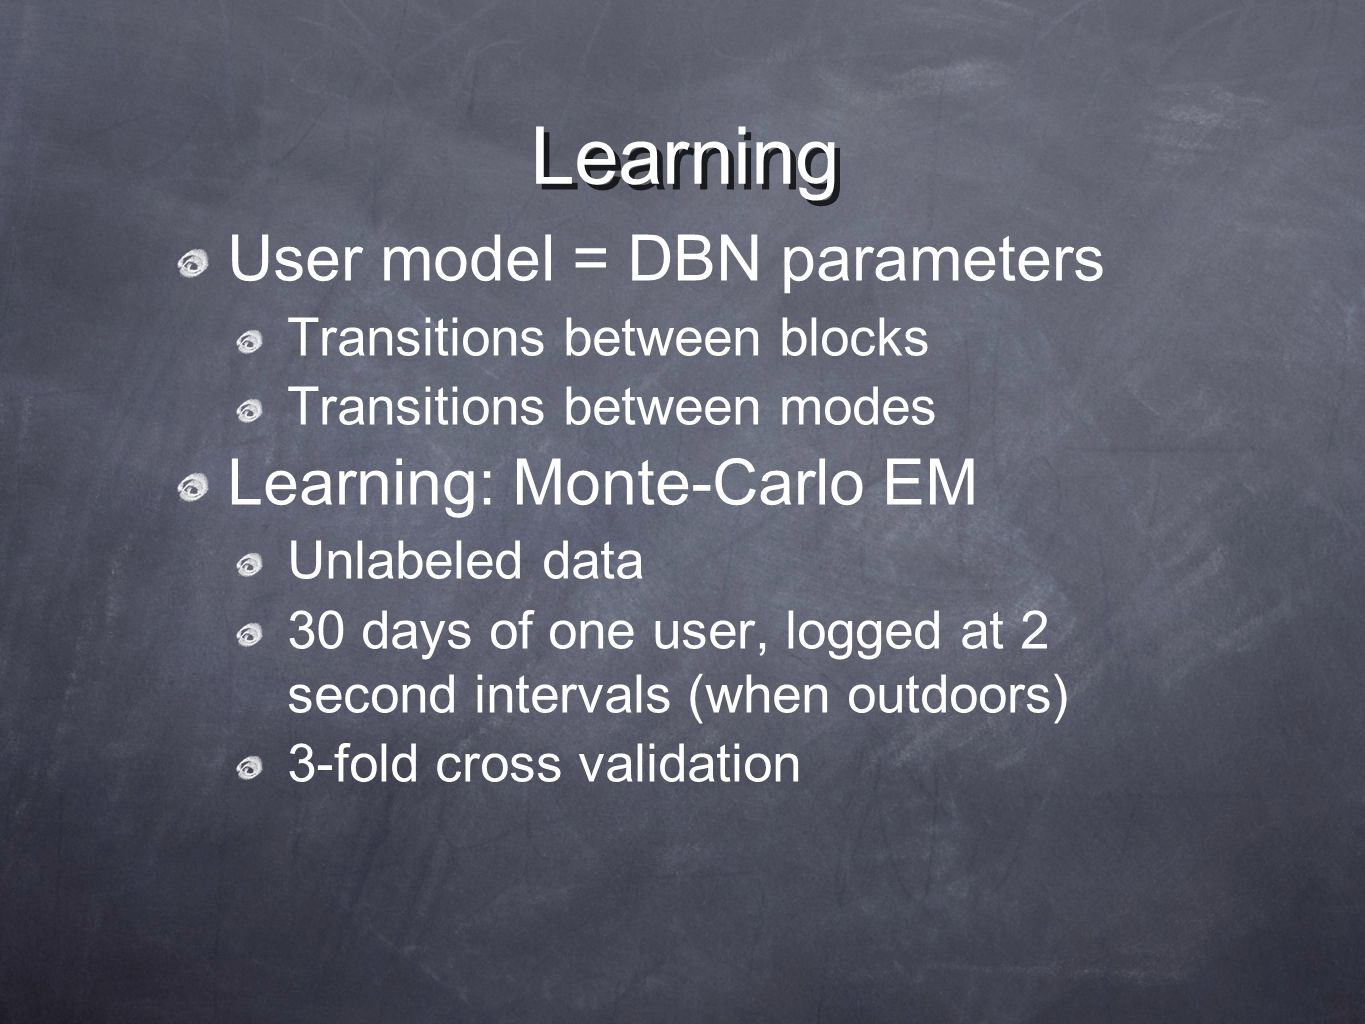 Learning User model = DBN parameters Transitions between blocks Transitions between modes Learning: Monte-Carlo EM Unlabeled data 30 days of one user, logged at 2 second intervals (when outdoors) 3-fold cross validation